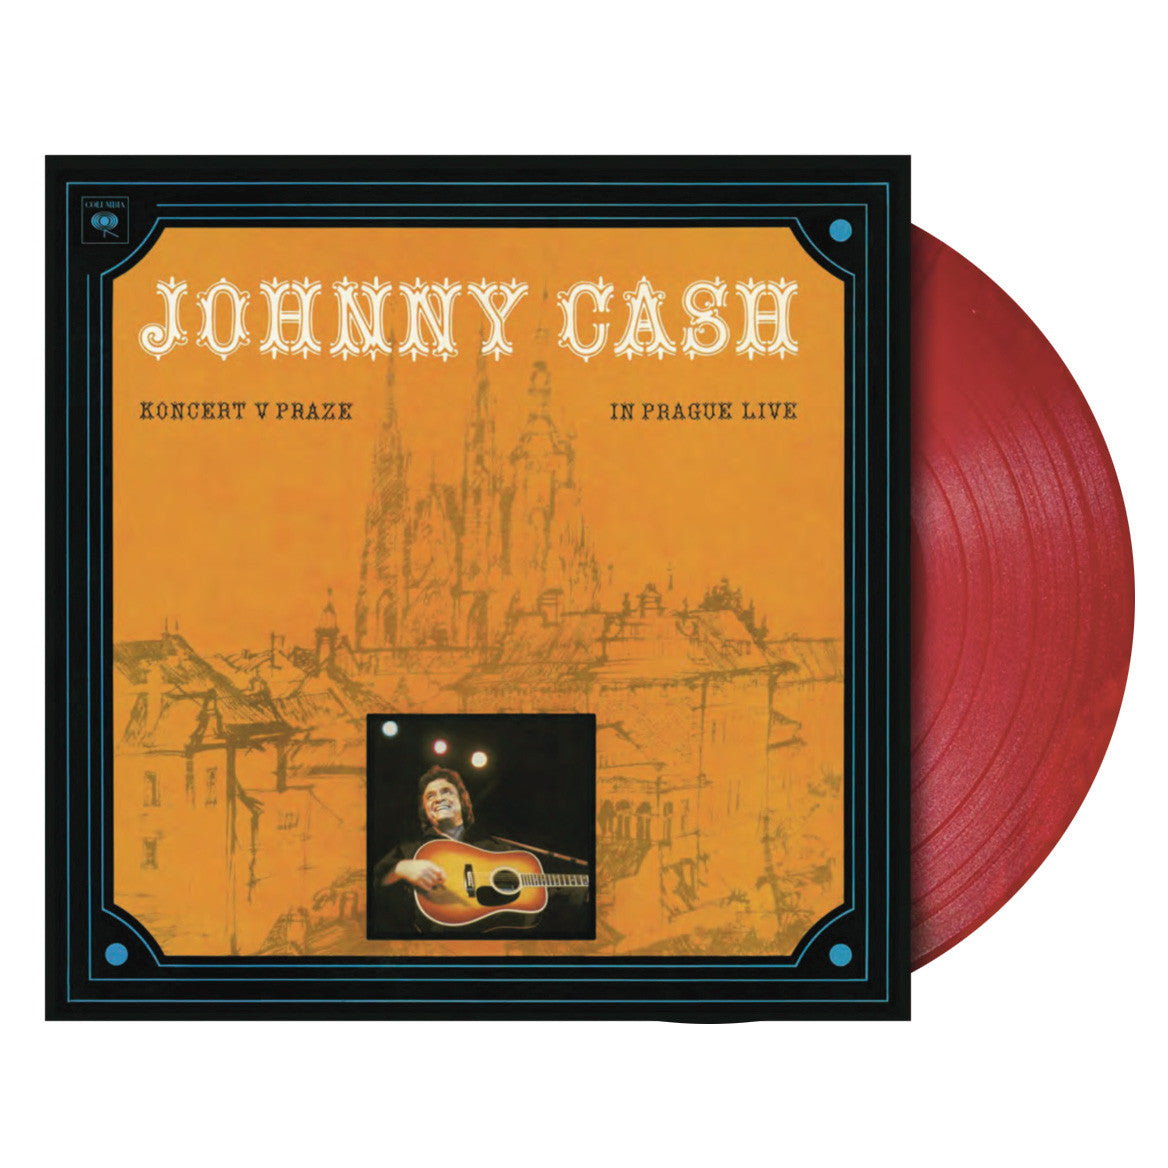 Johnny Cash: Koncert v Praze - In Prague Live Vinyl LP (Record Store Day)